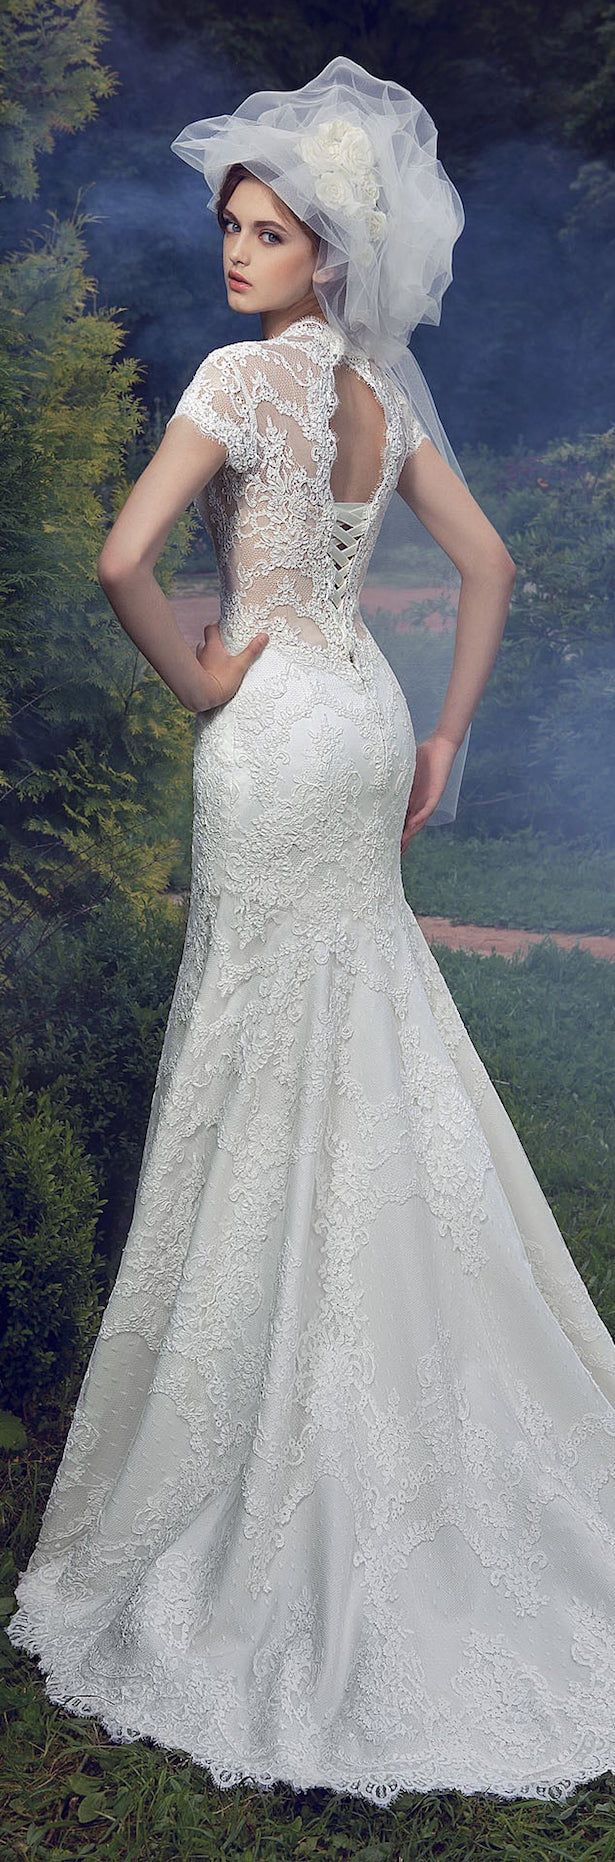 Wedding dresses illustration description milva wedding dresses